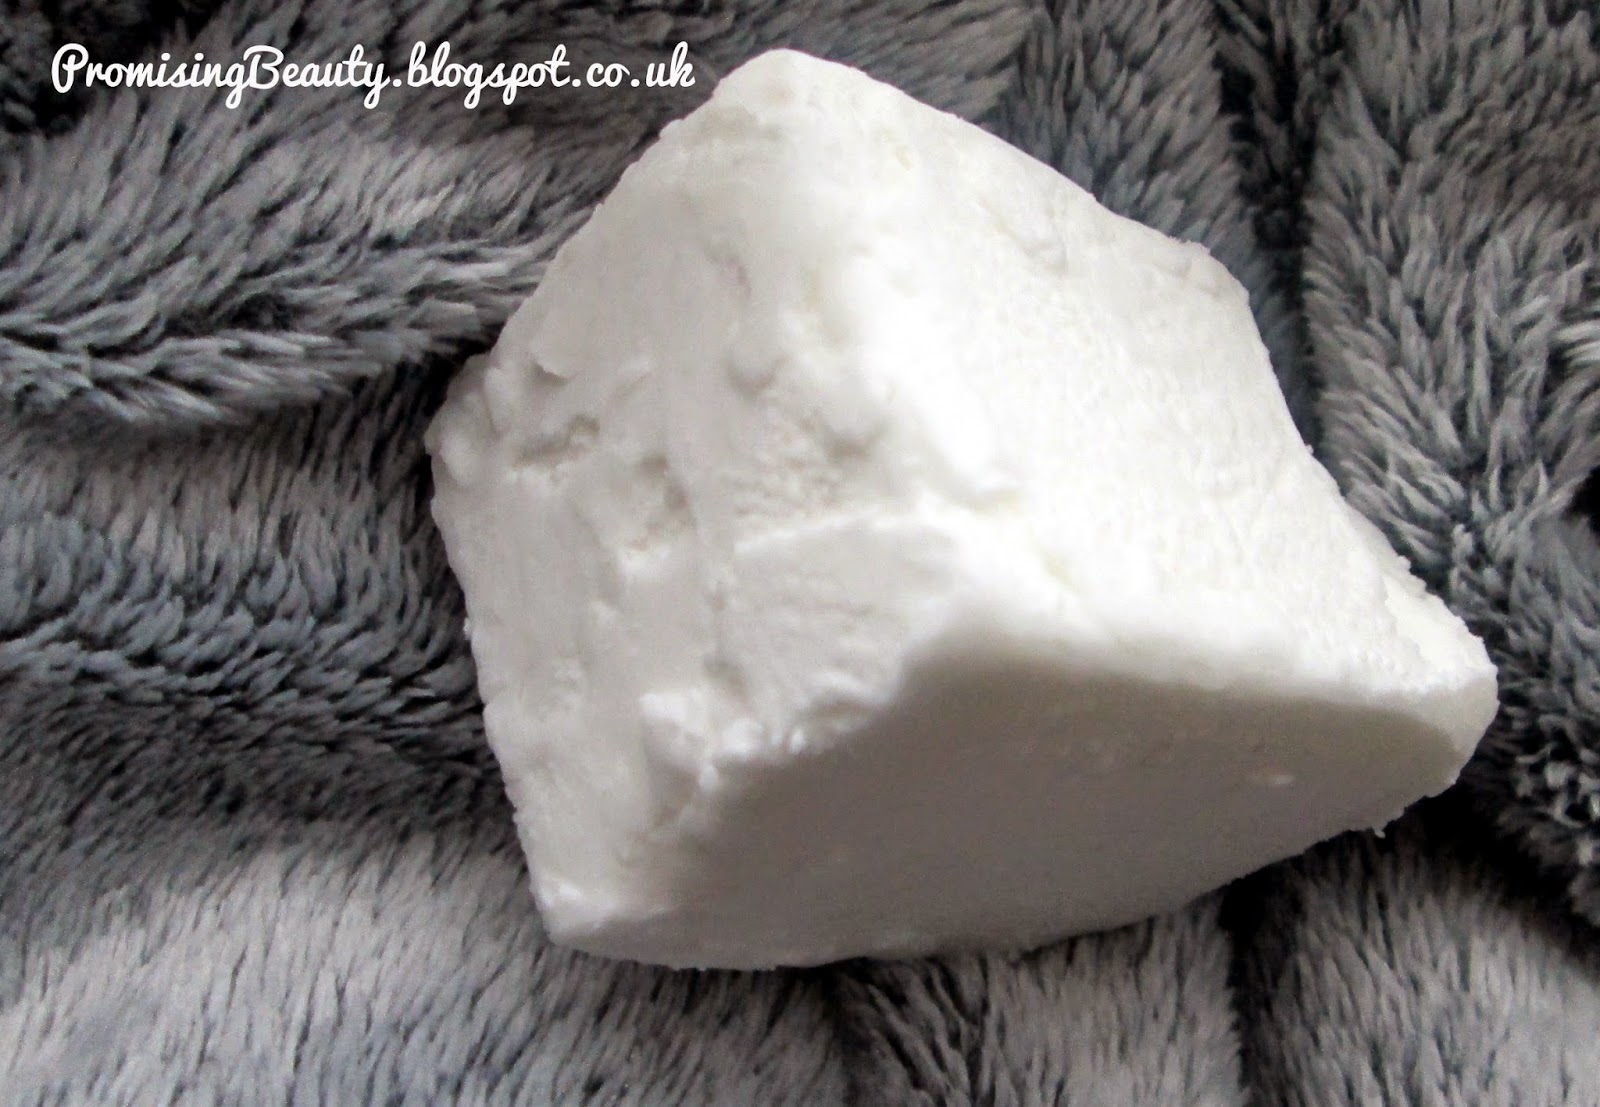 Block of solid coconut oil. White chunk of coconut oil from naissance.